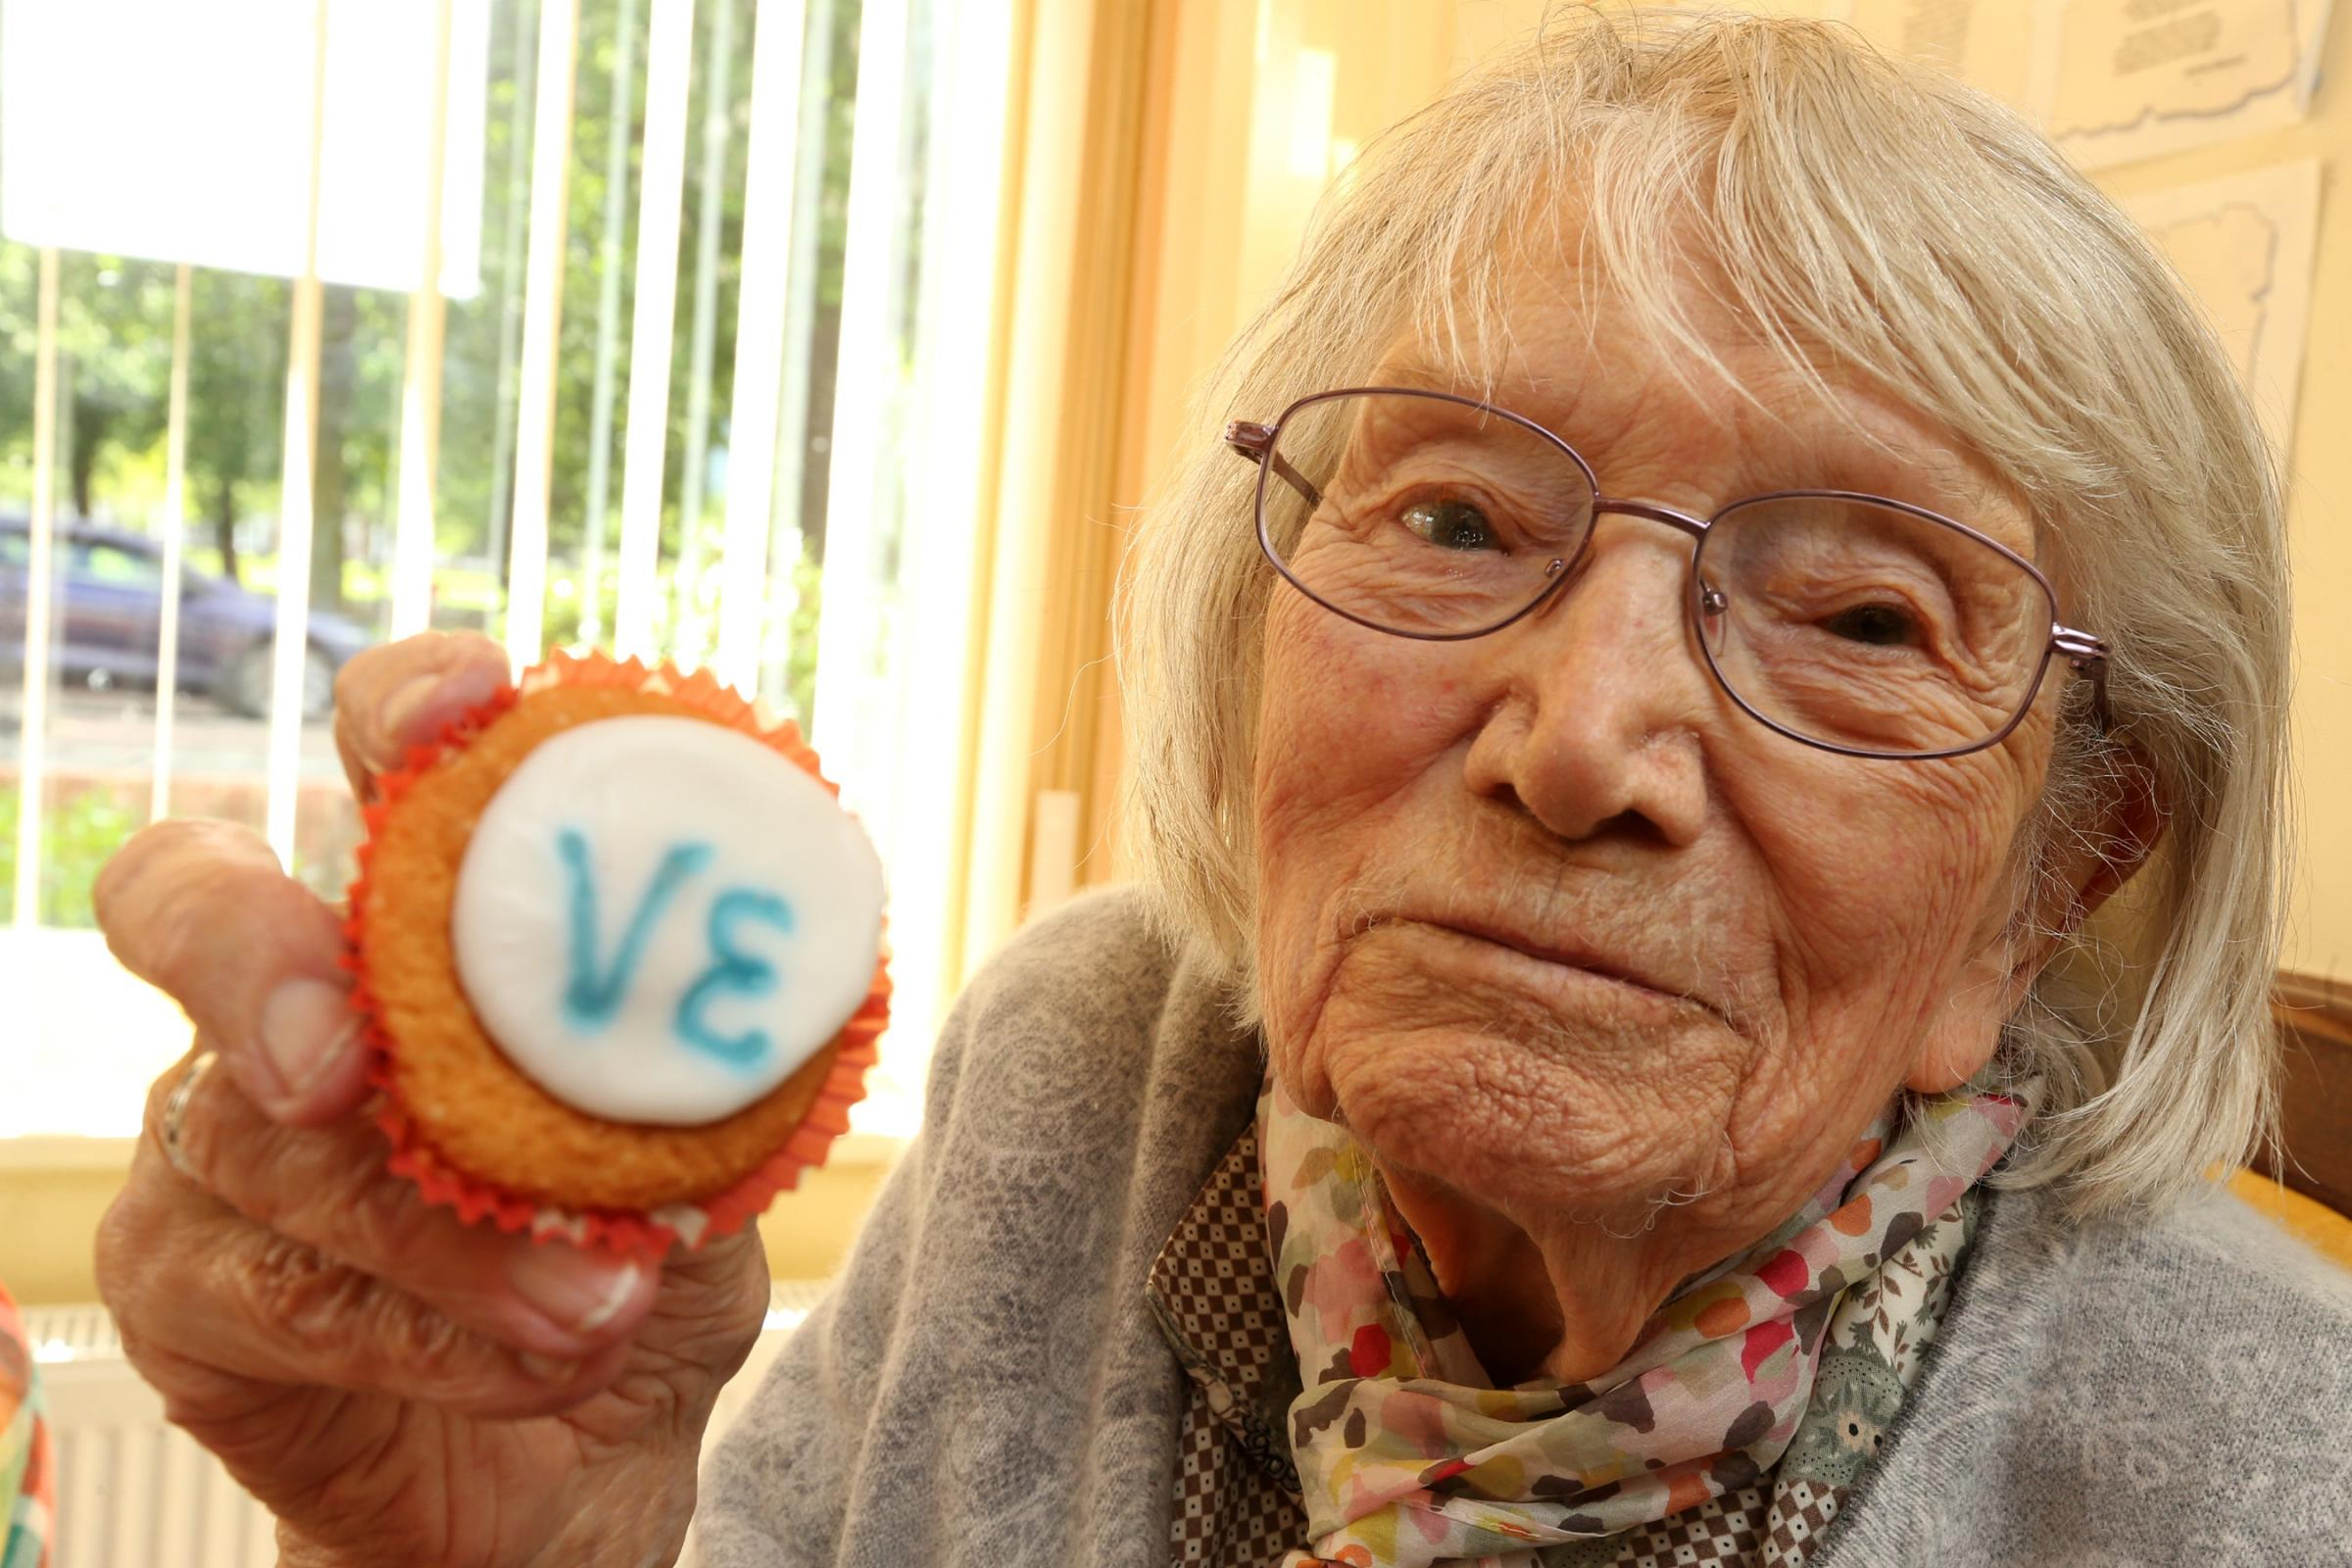 100-year-old Eileen Cox at the event yesterday. - 3731962